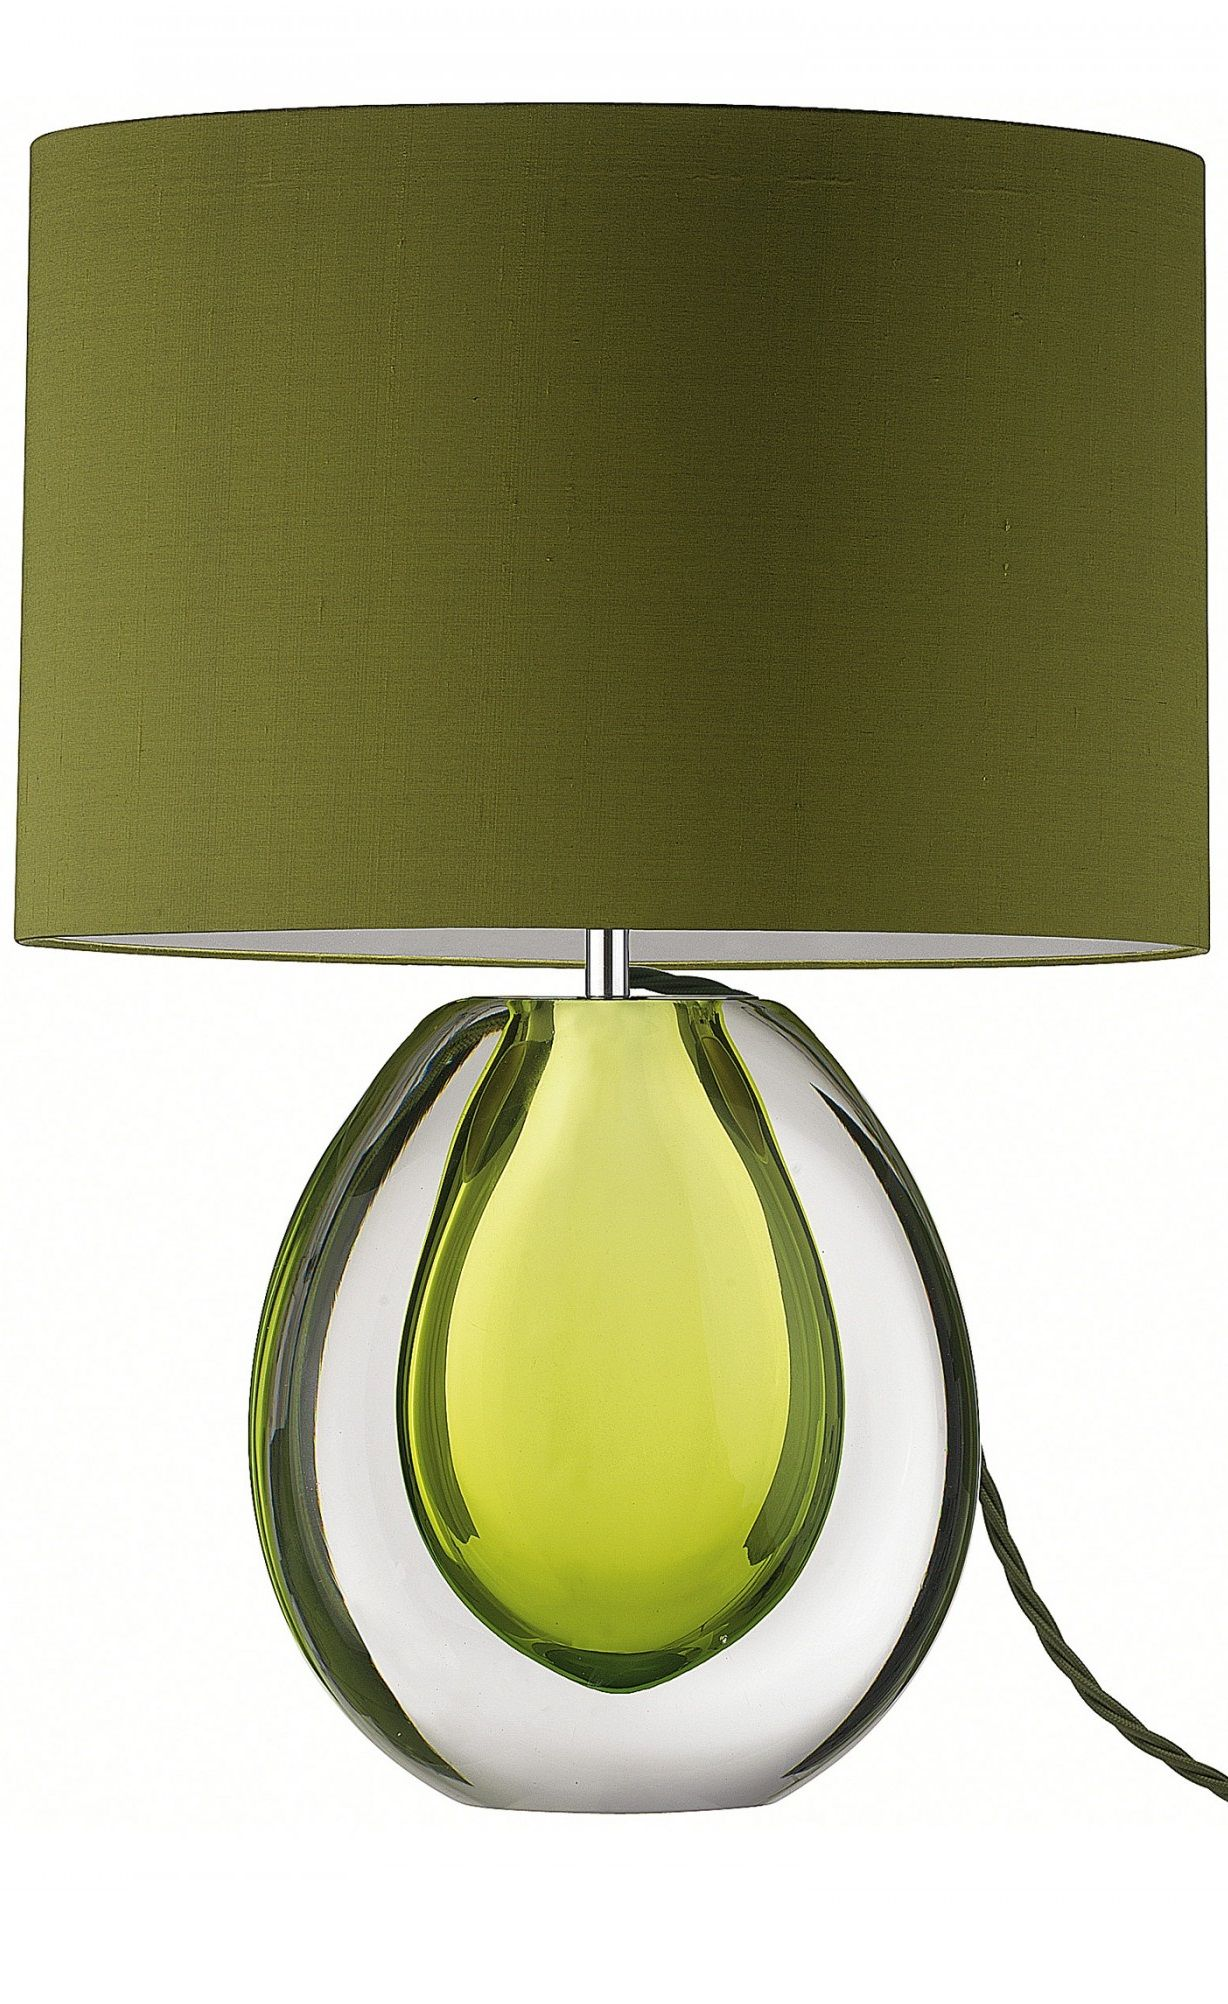 Green Green Table Lamp Table Lamps Modern Table Lamps Contemporary Table Lamps Designer Table Art Glass Table Lamp Beautiful Table Lamp Green Table Lamp